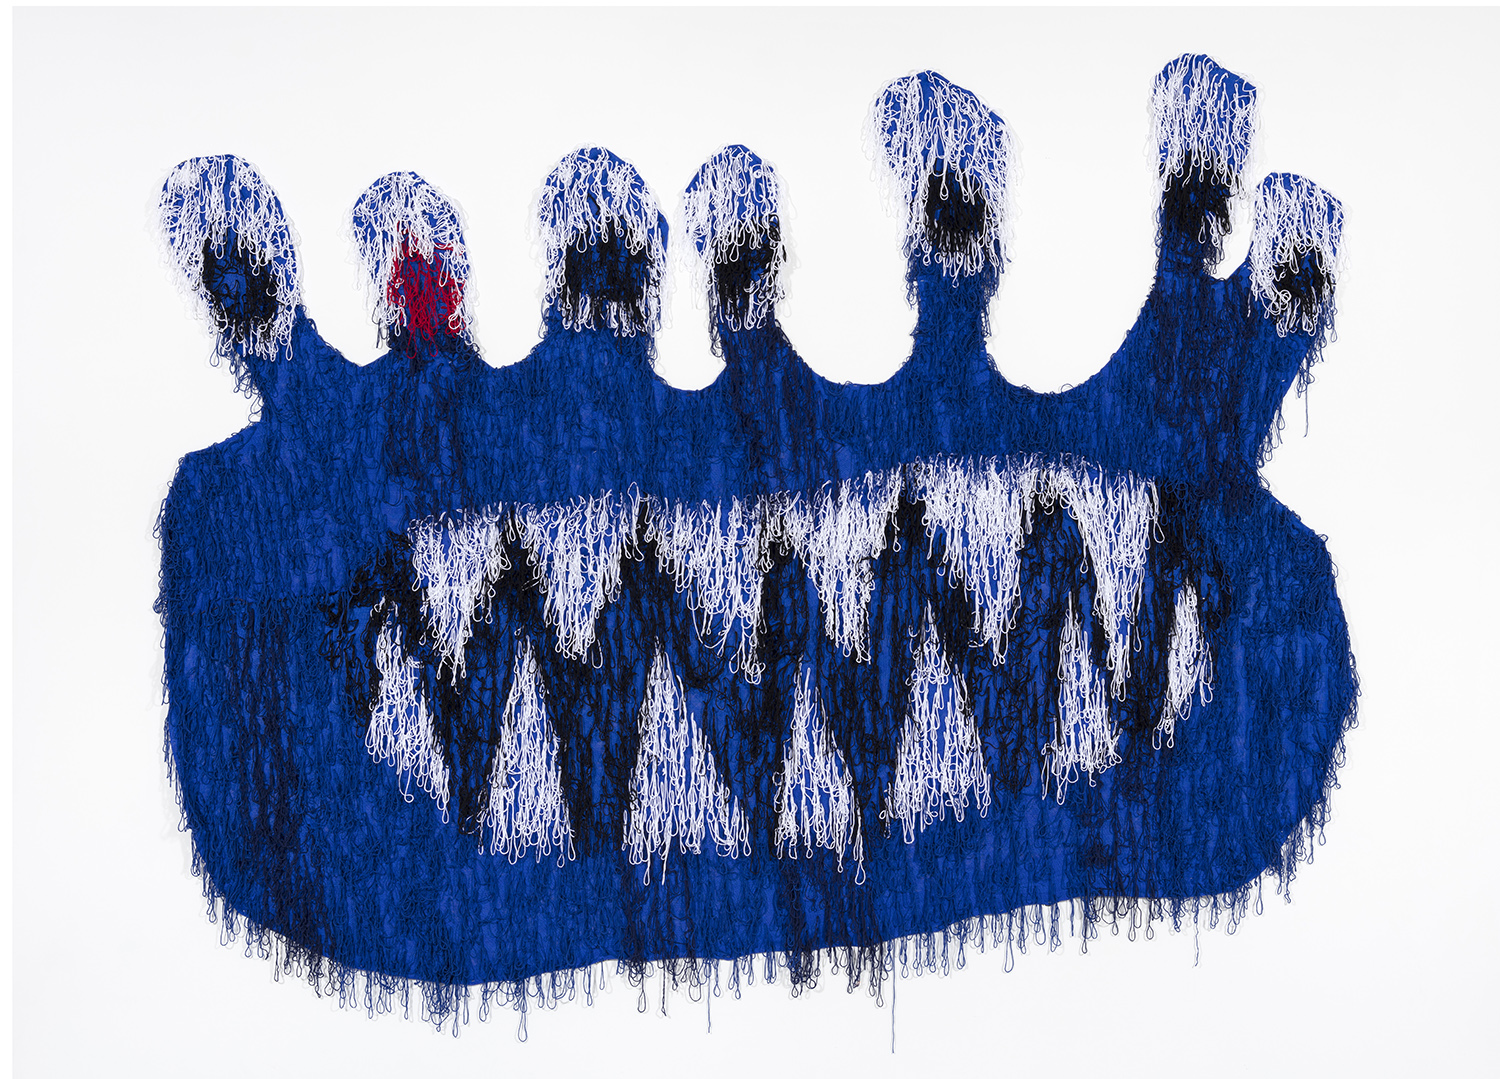 Hannah Epstein. <em>Big Blue Alien</em>, 2018. Acrylic and burlap, 111 x 154 inches (281.9 x 391.2 cm)